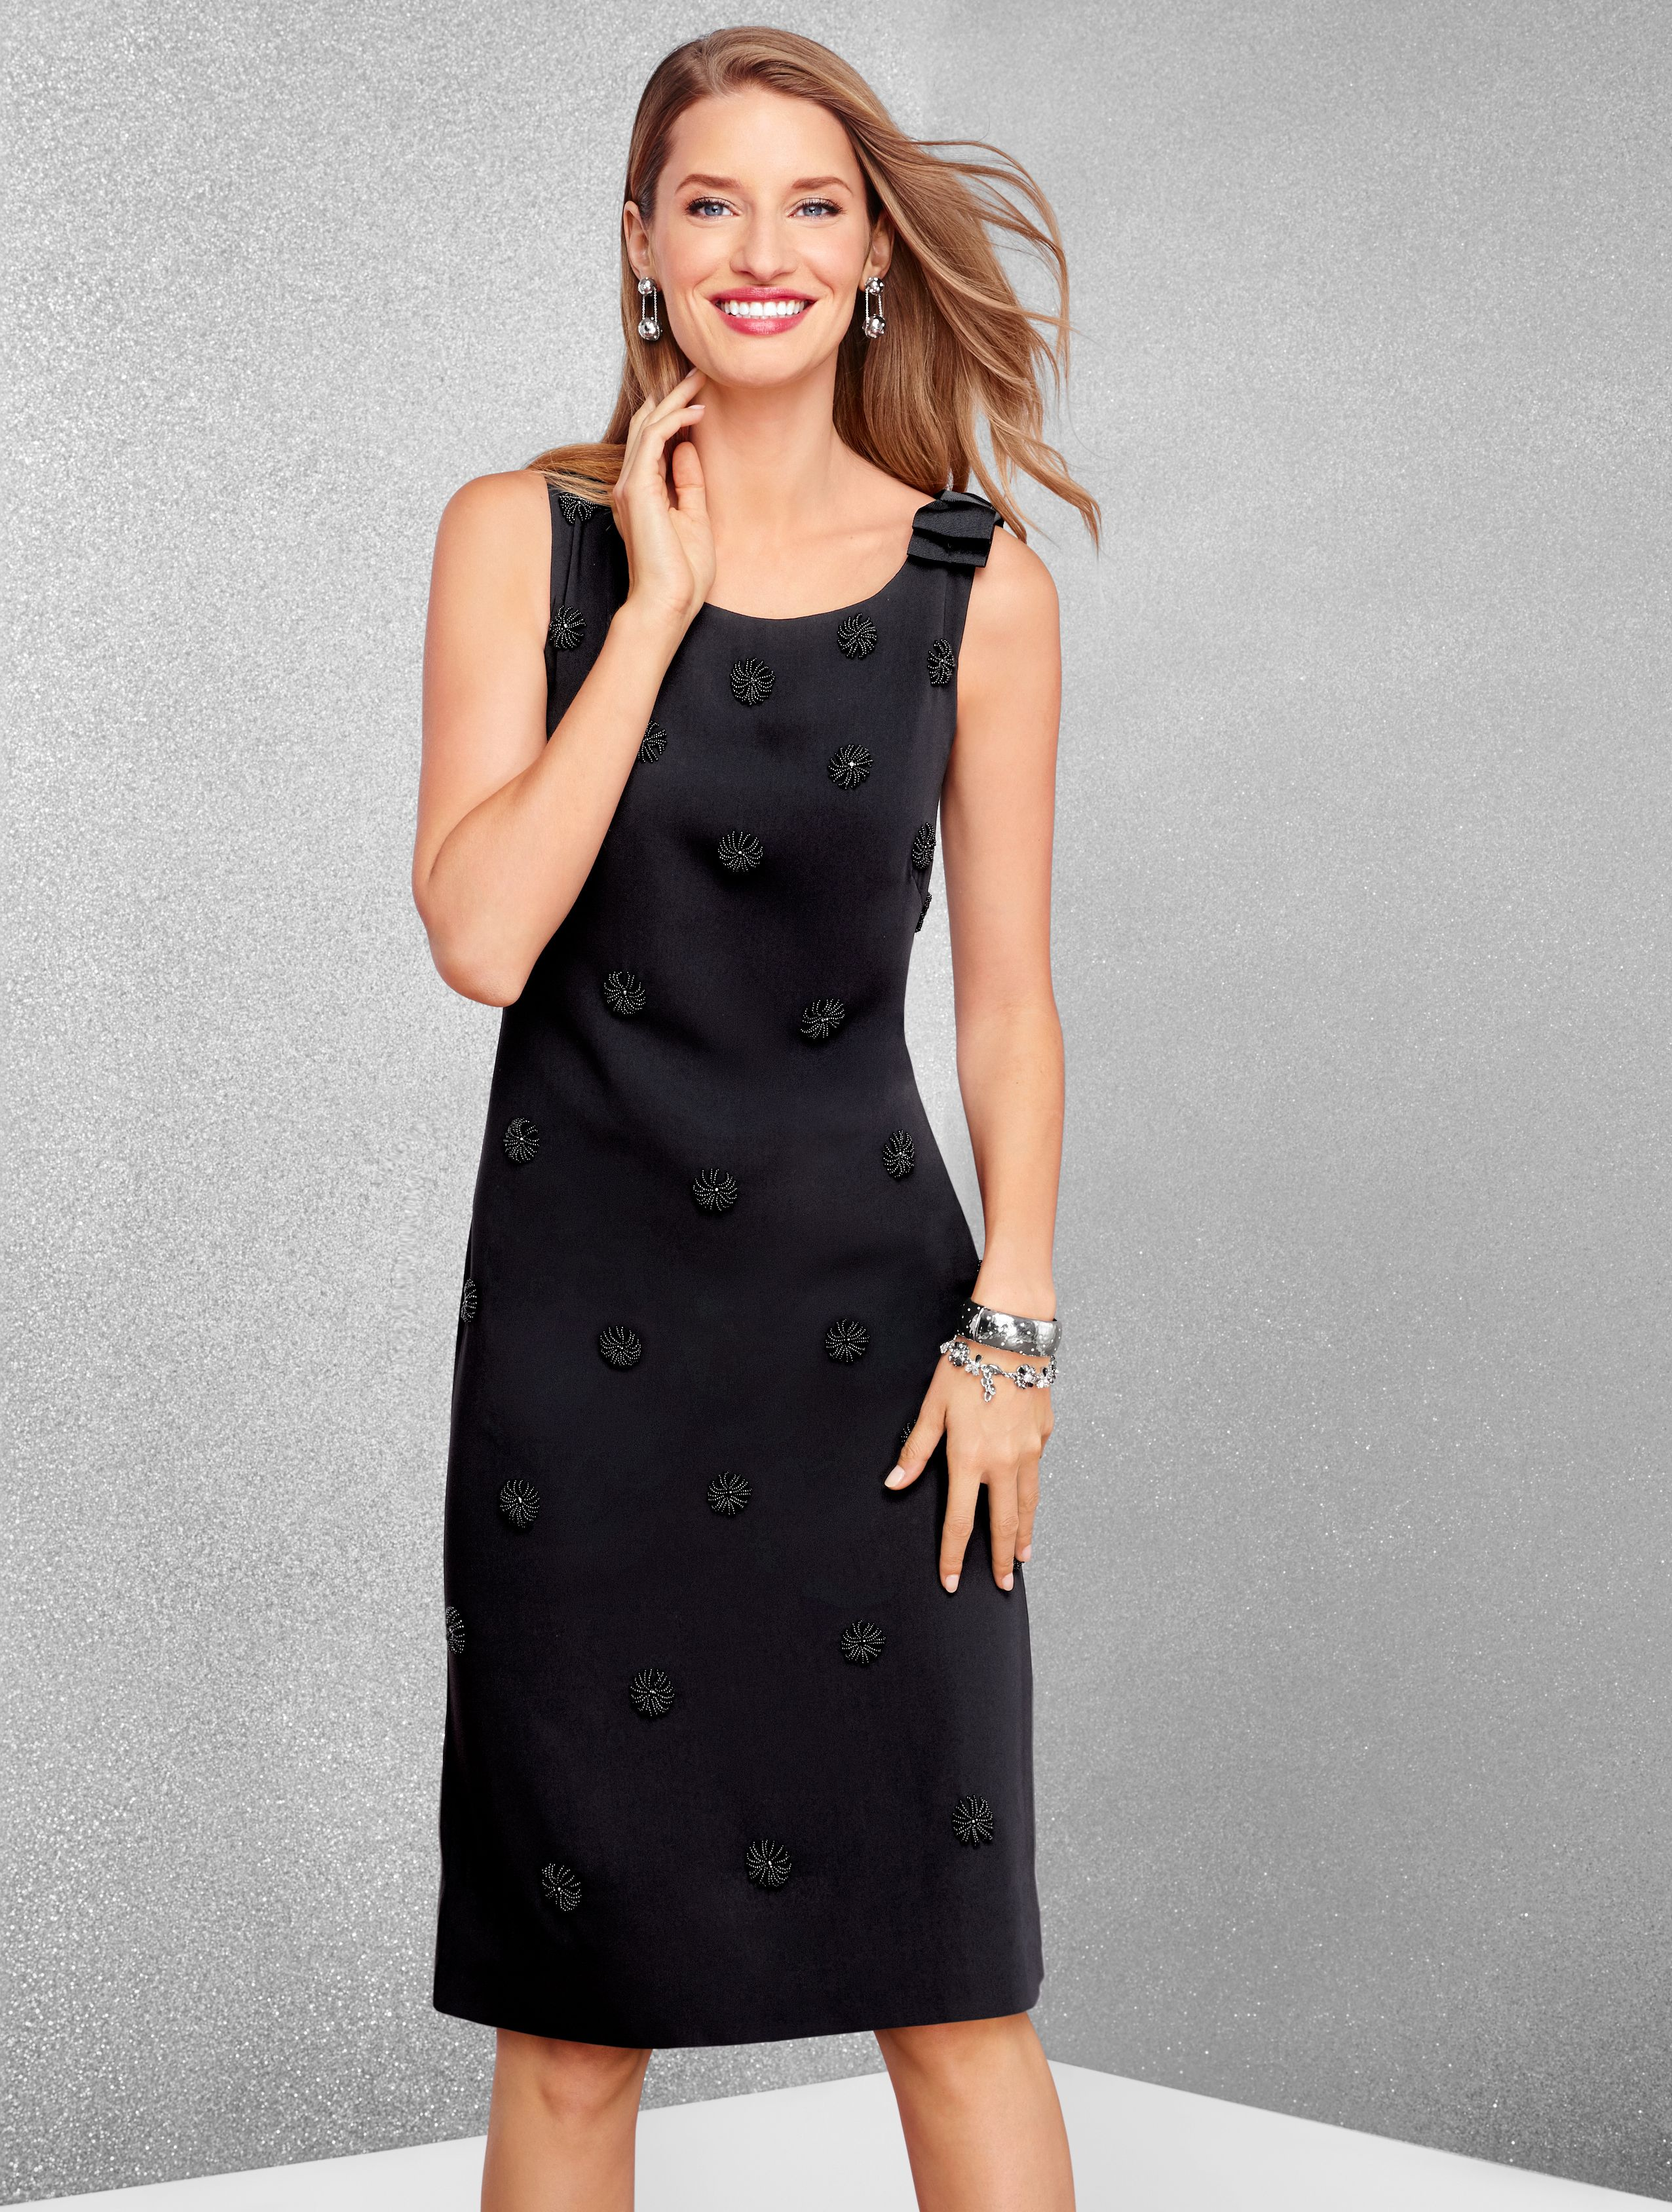 The Little Black Dress Gets A Sparkling Show Stopping Update Beaded Embroidered Flowers Bloom On A Field Of Flawles Talbots Fashion Clothes Clothes For Women [ 3376 x 2552 Pixel ]